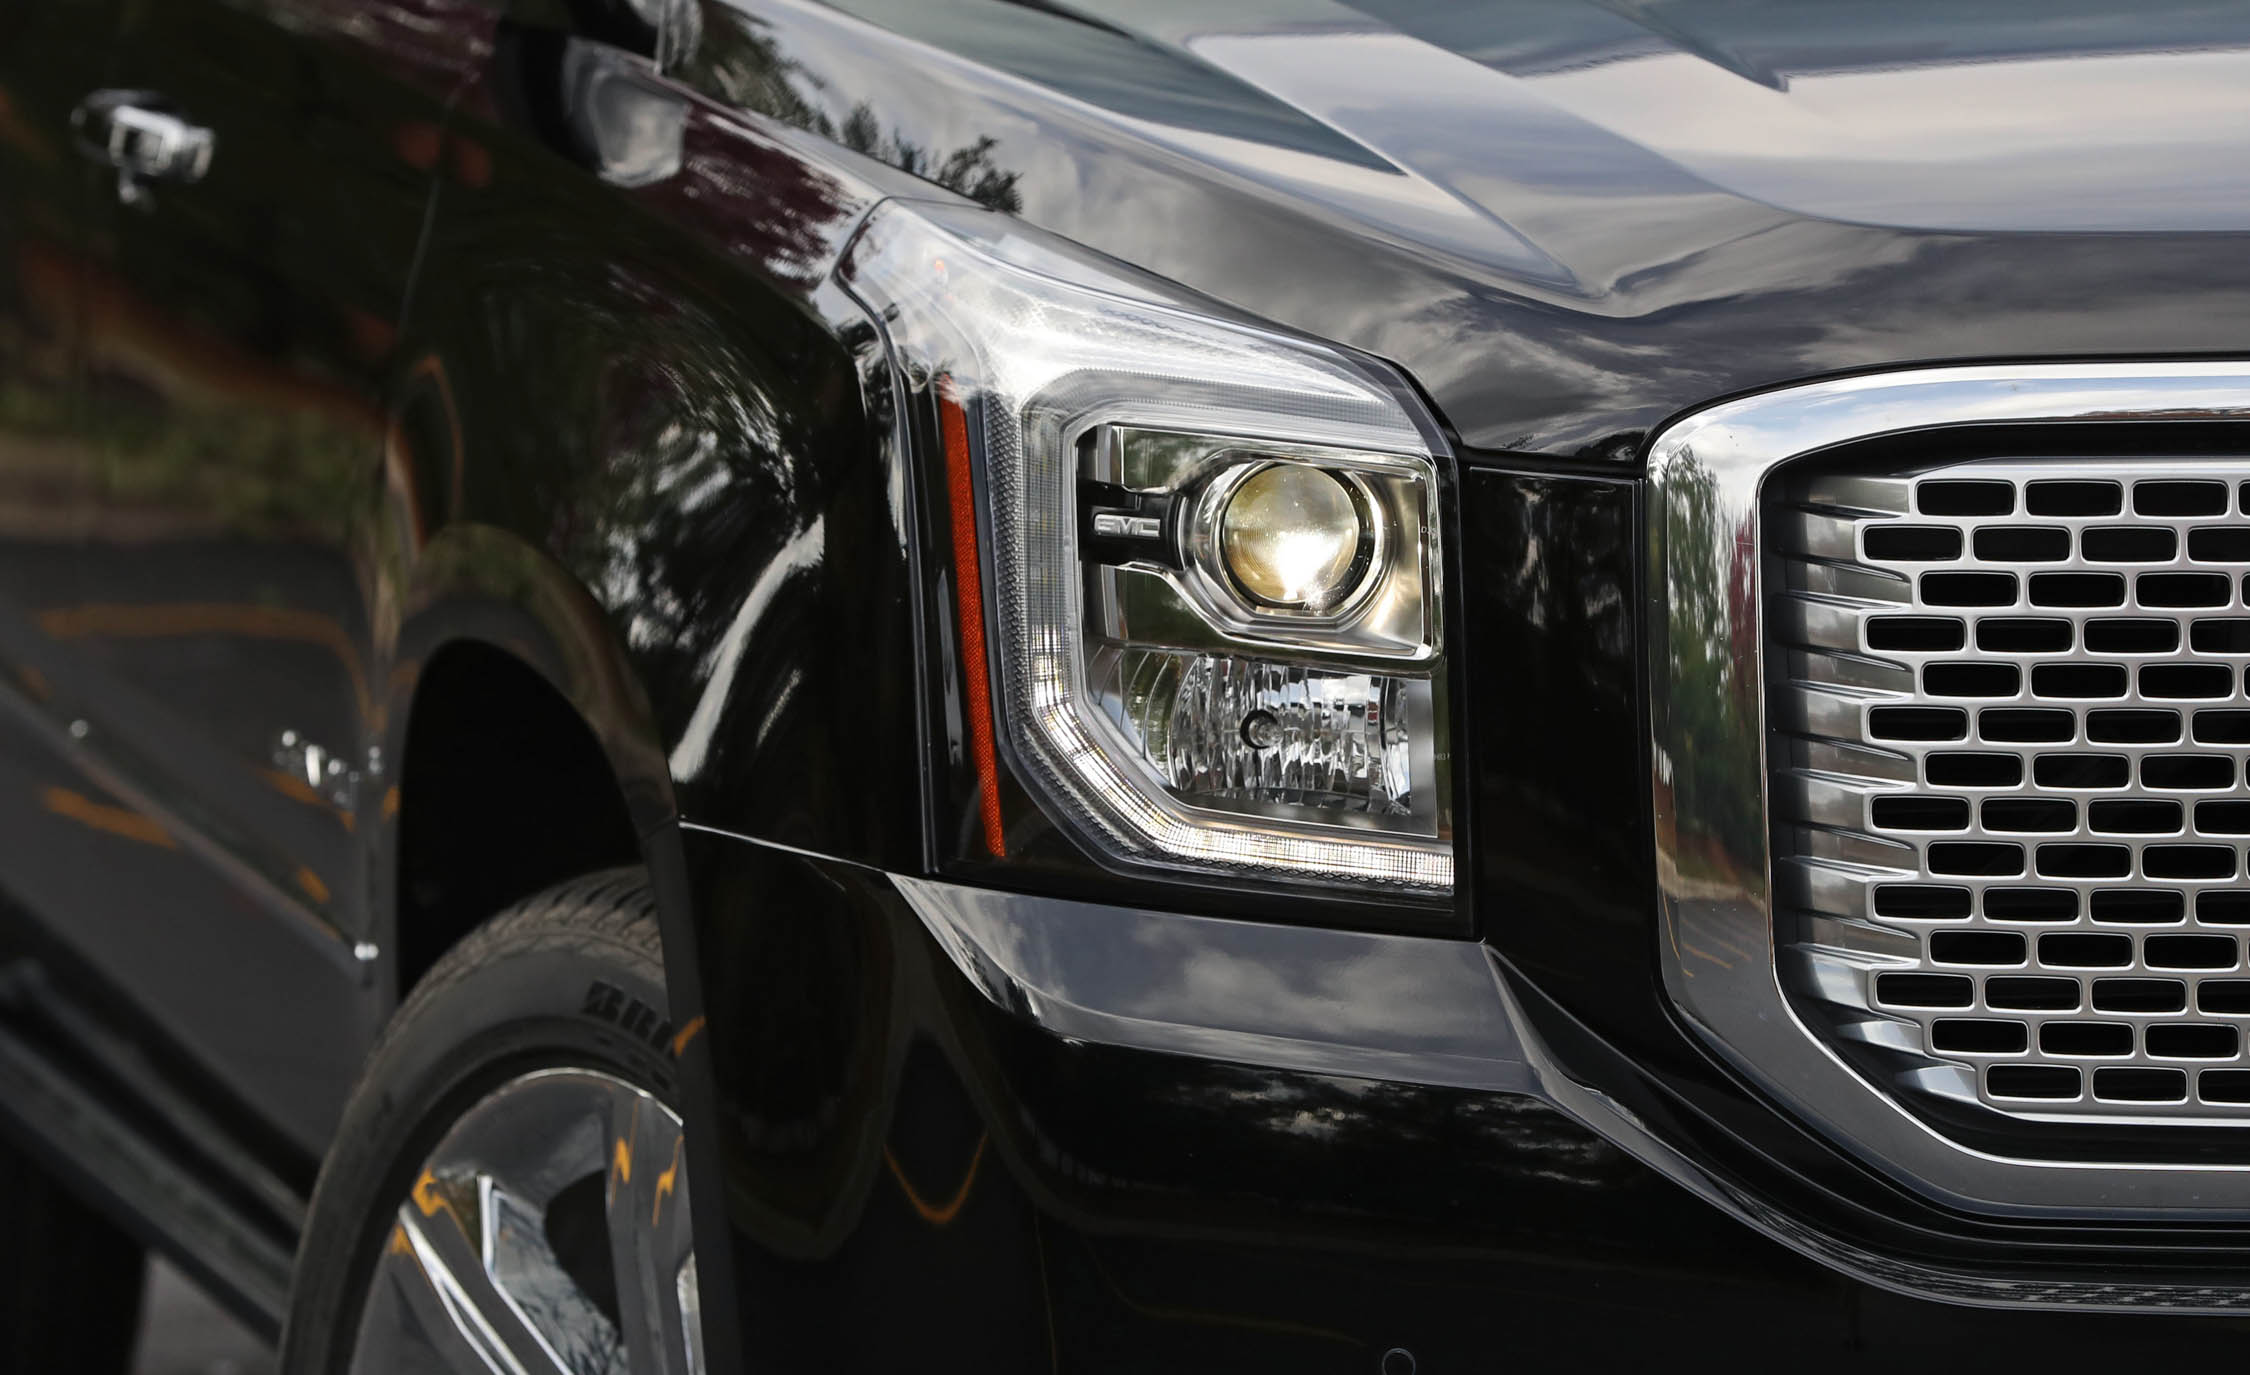 2017 Gmc Yukon Xl Denali Exterior View Headlight (Photo 12 of 26)